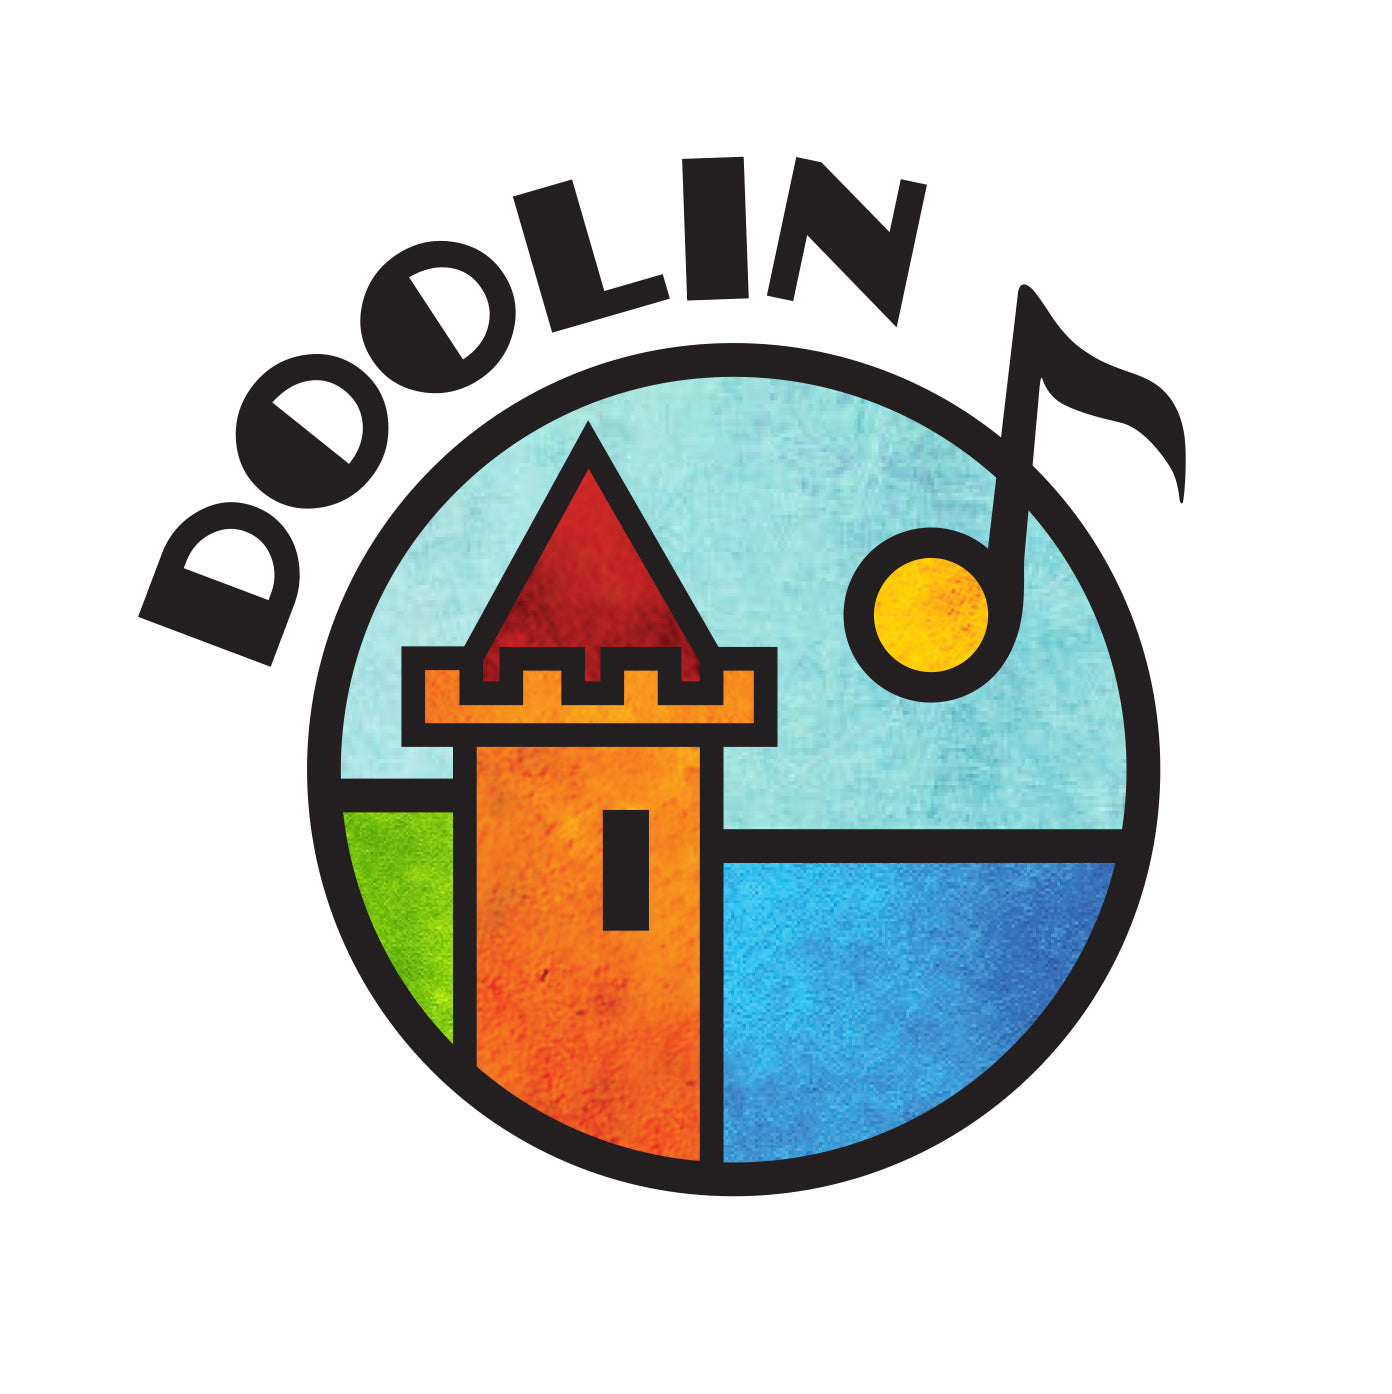 Doolin Tourism - Promoting Doolin Home of Traditional Irish Music